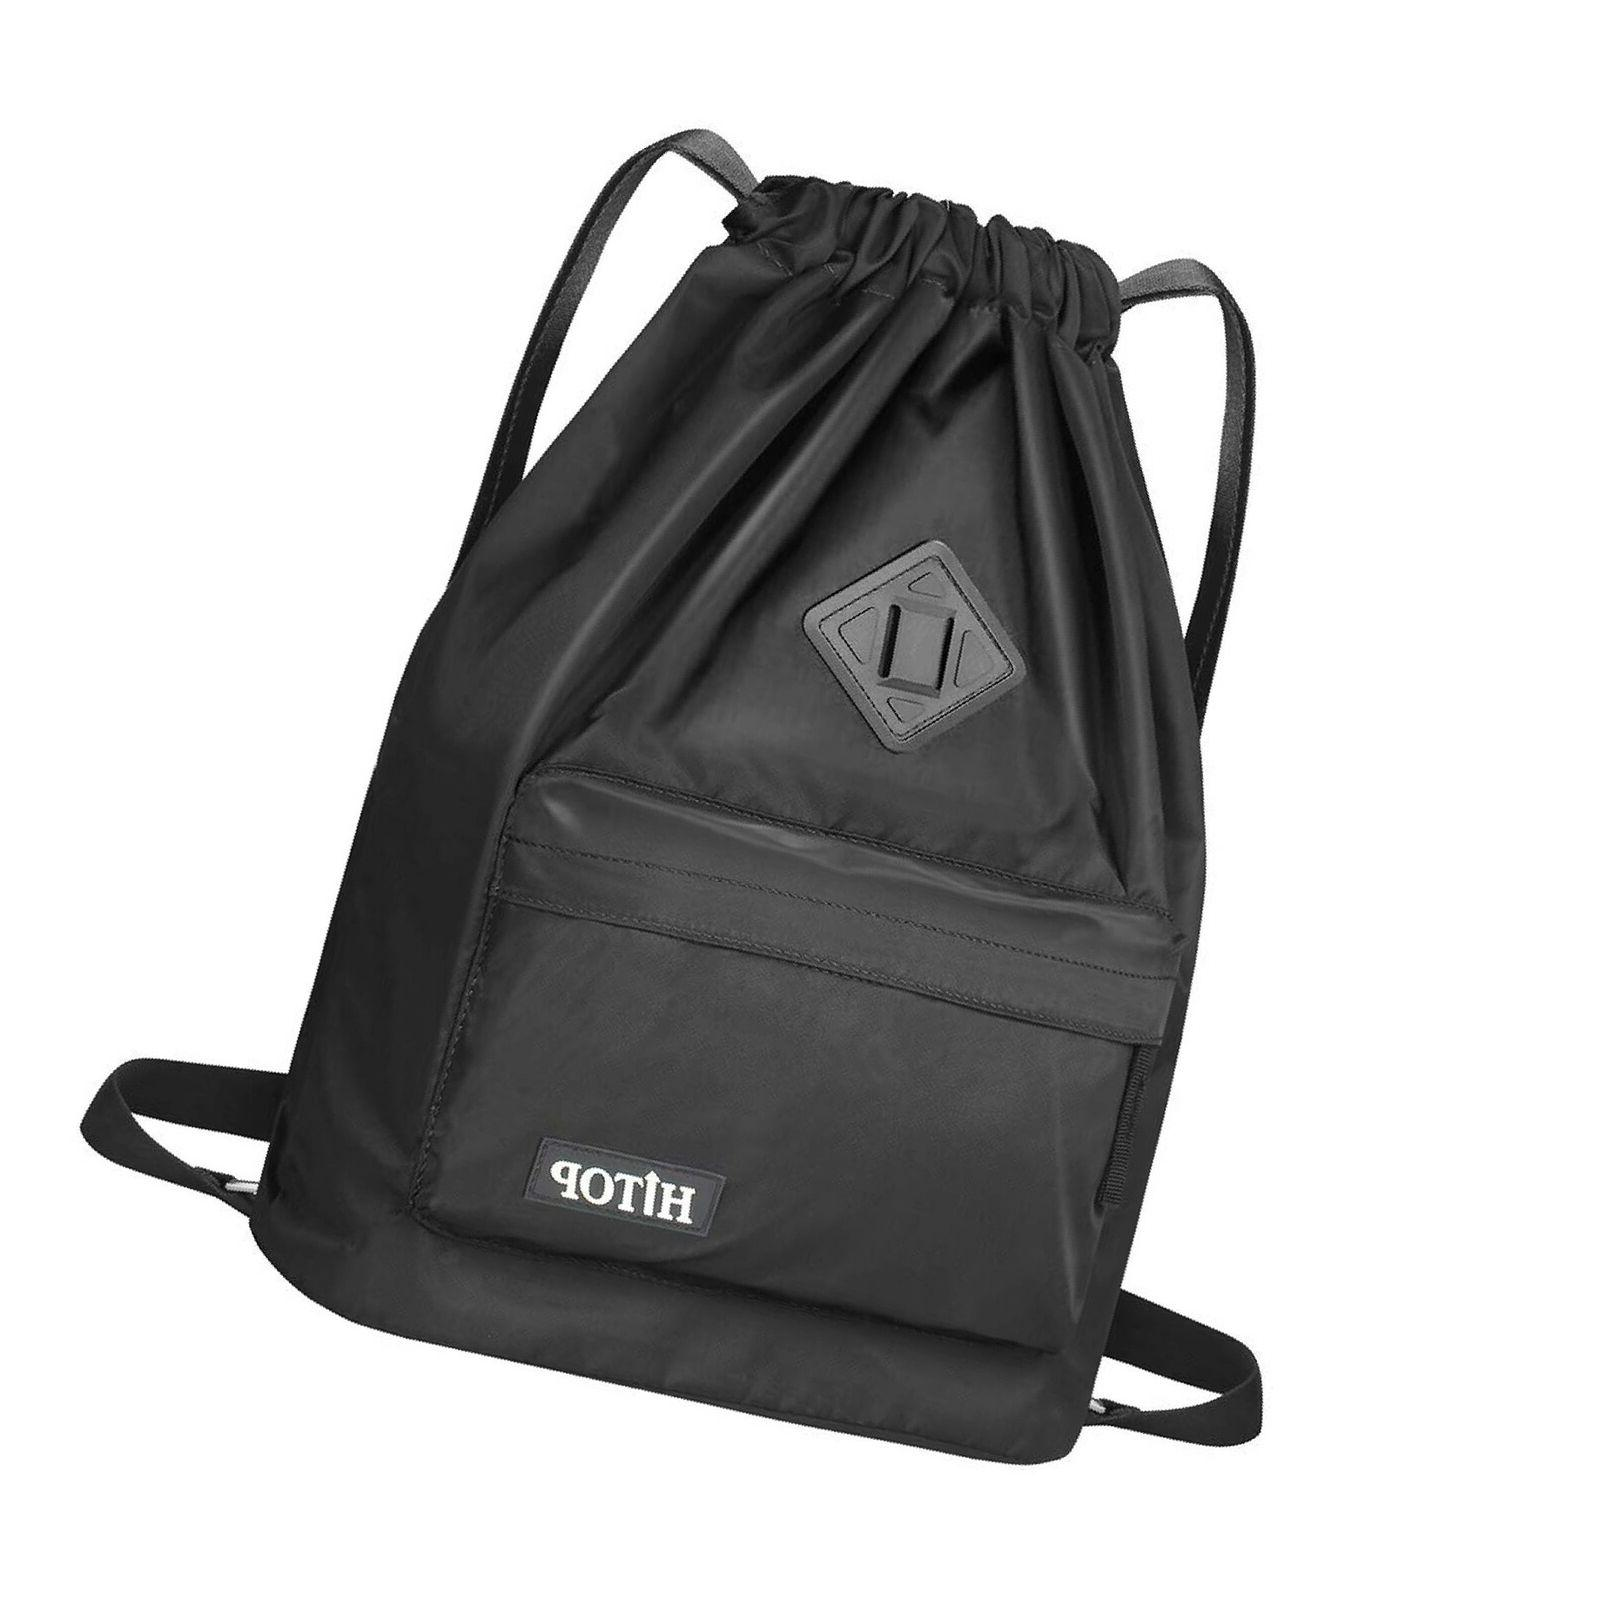 waterproof drawstring bag lightweight gym